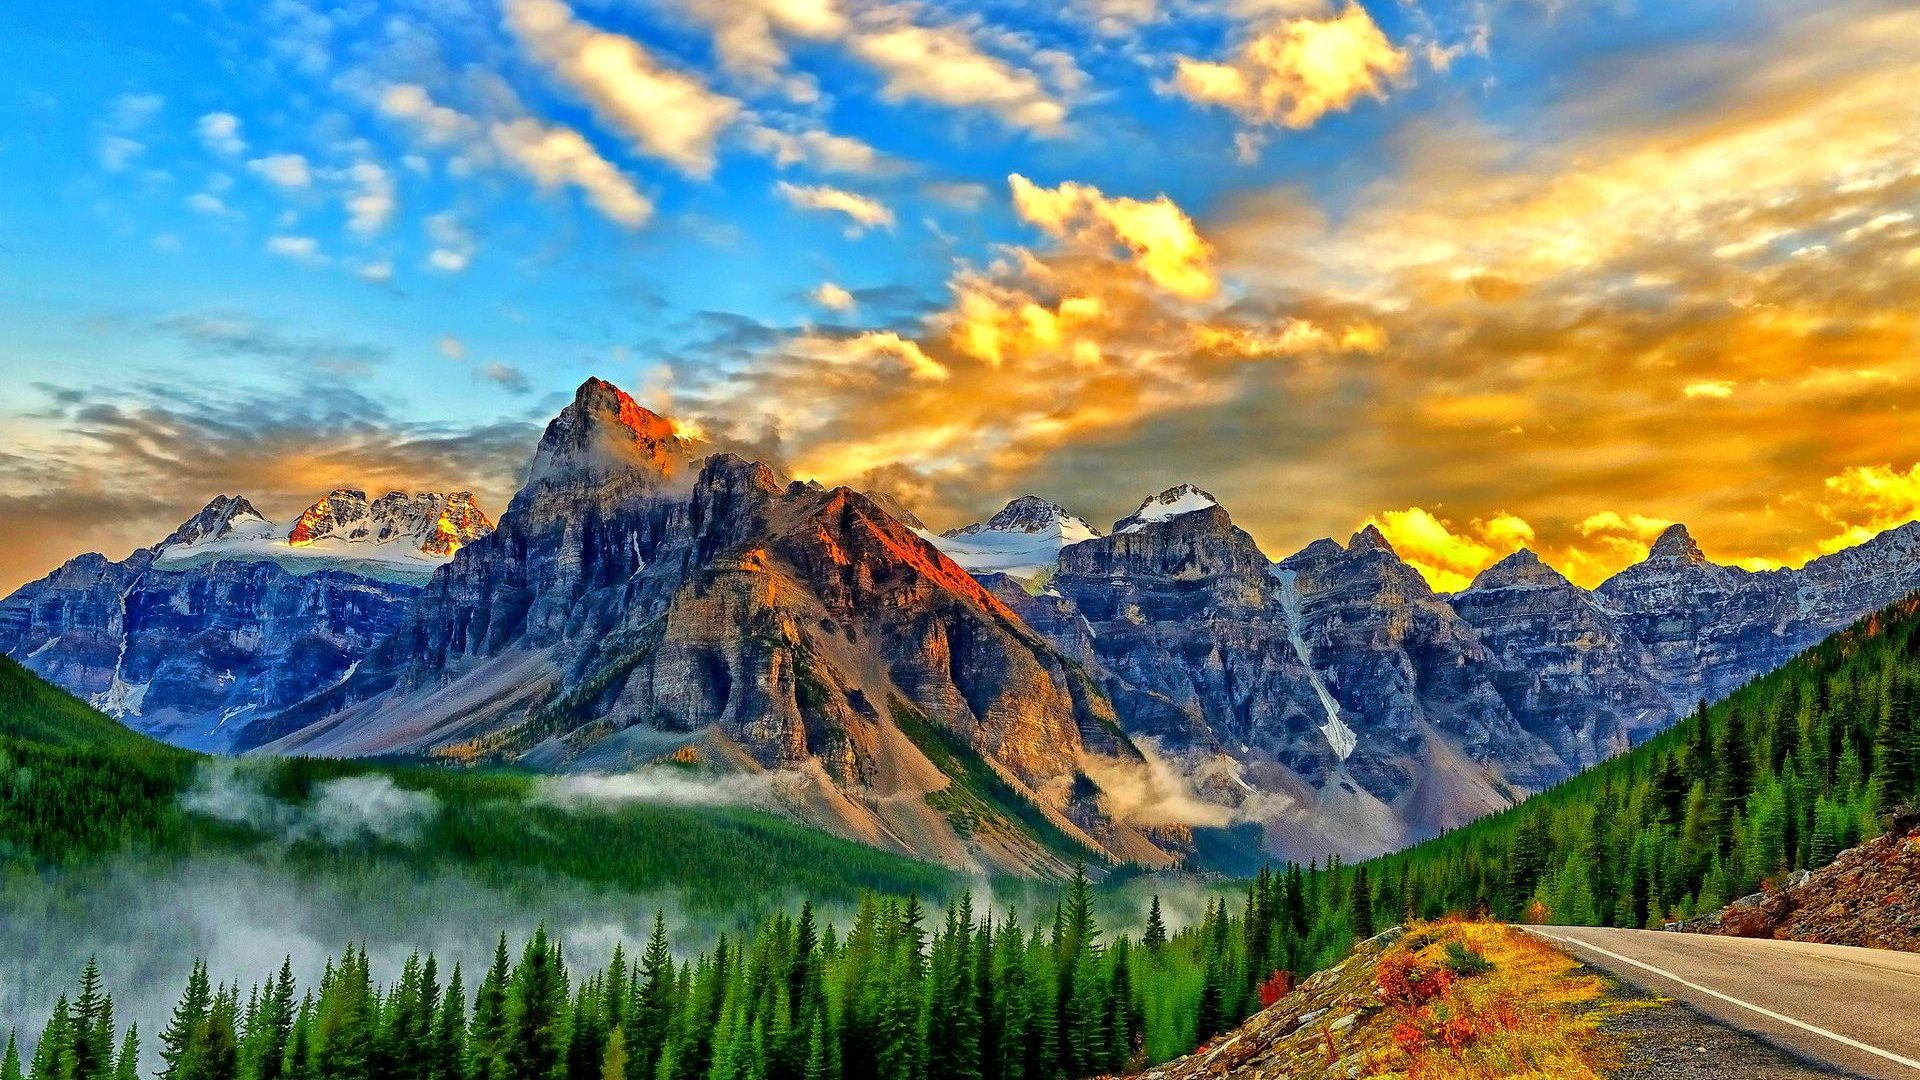 Background Mountains